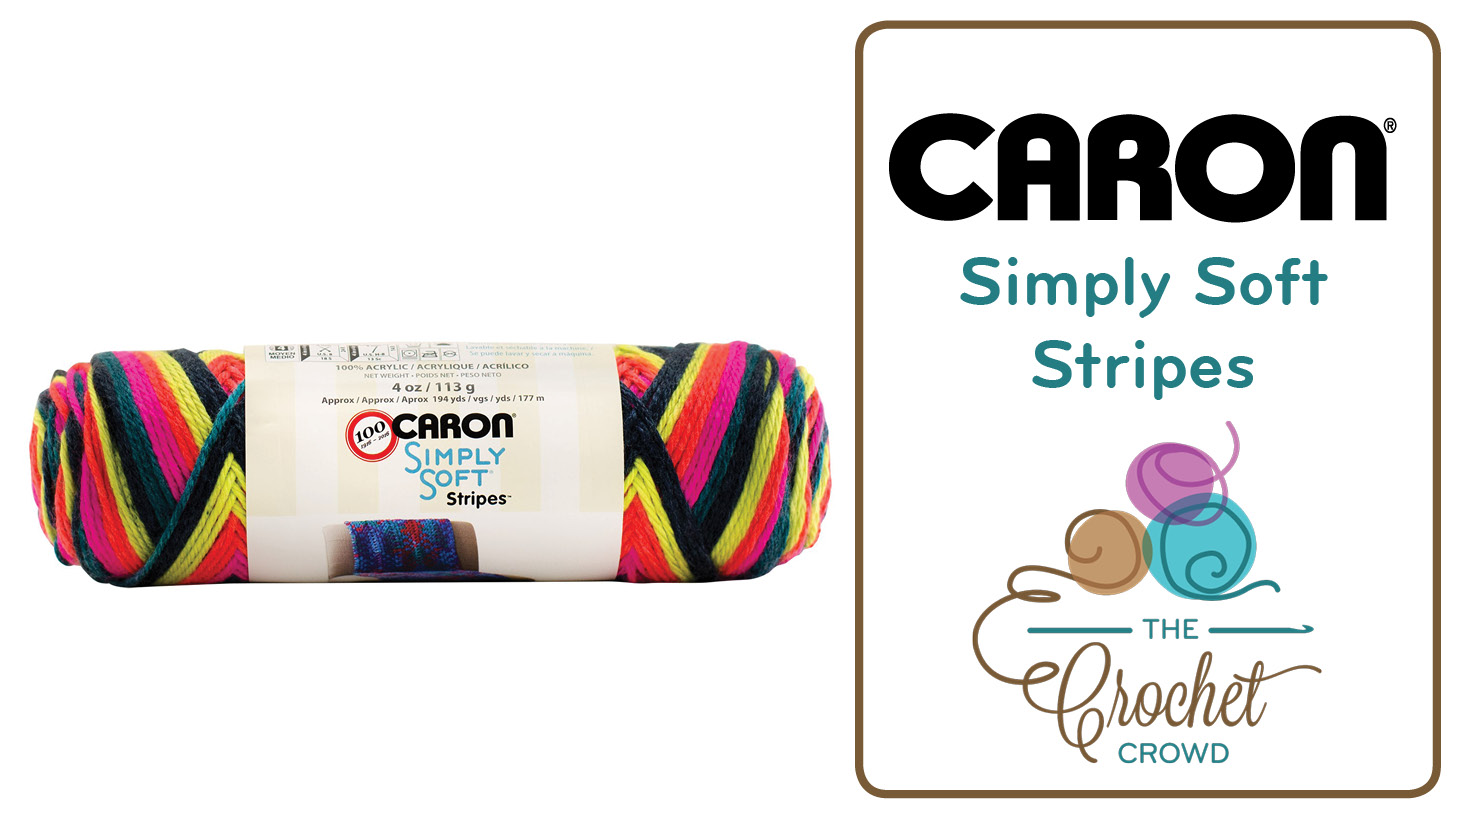 What To Do With Caron Simply Soft Stripes Yarn